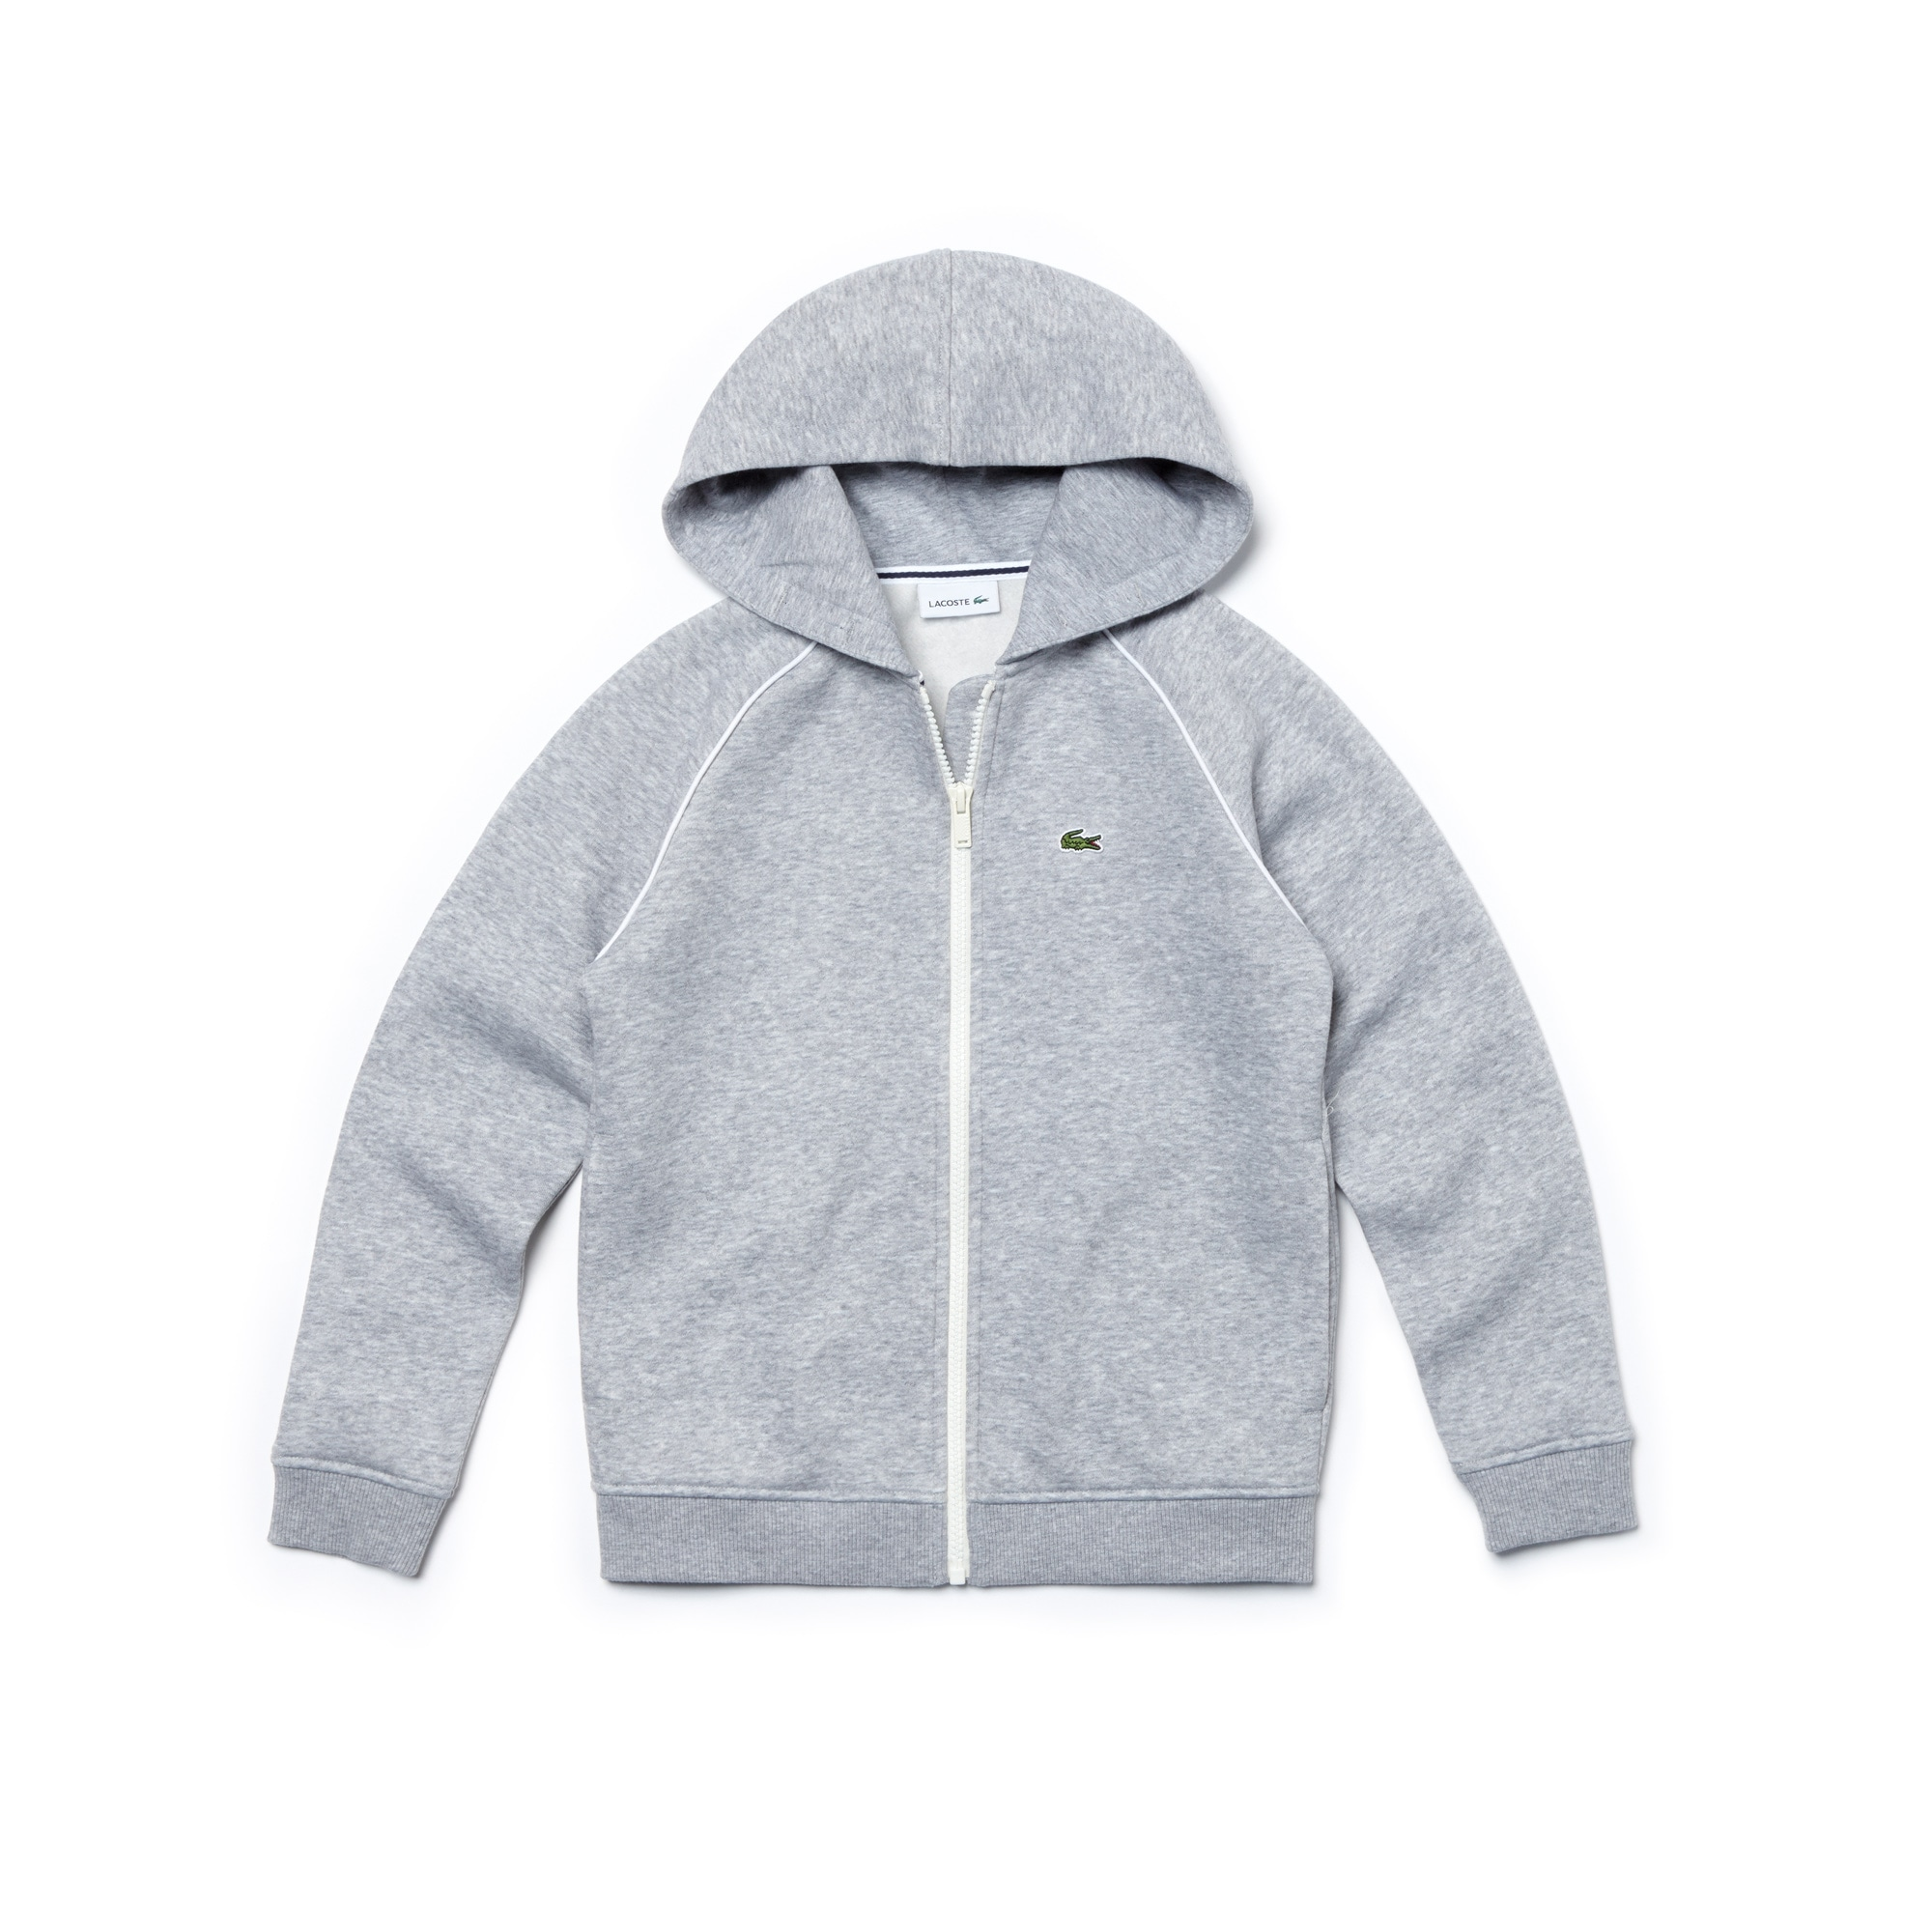 Boys' Hooded Piped Zip Sweatshirt